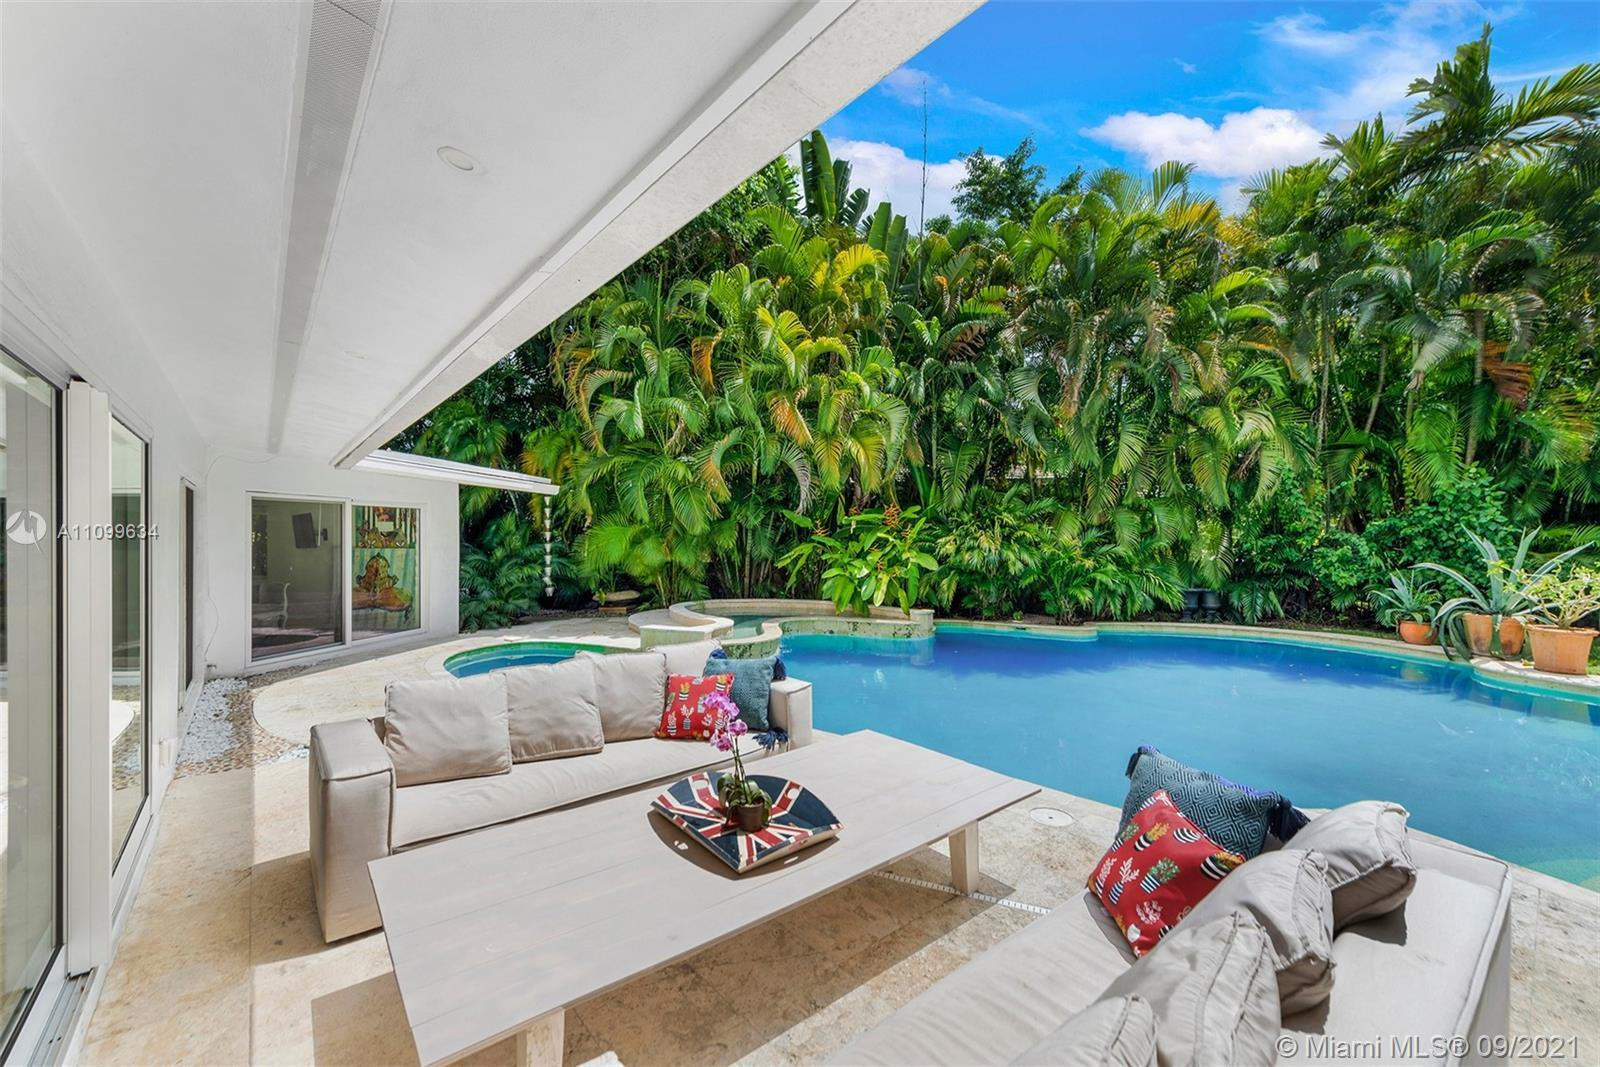 Once in lifetime Miami Shores opportunity to live in a private, tropical oasis under majestic oaks o